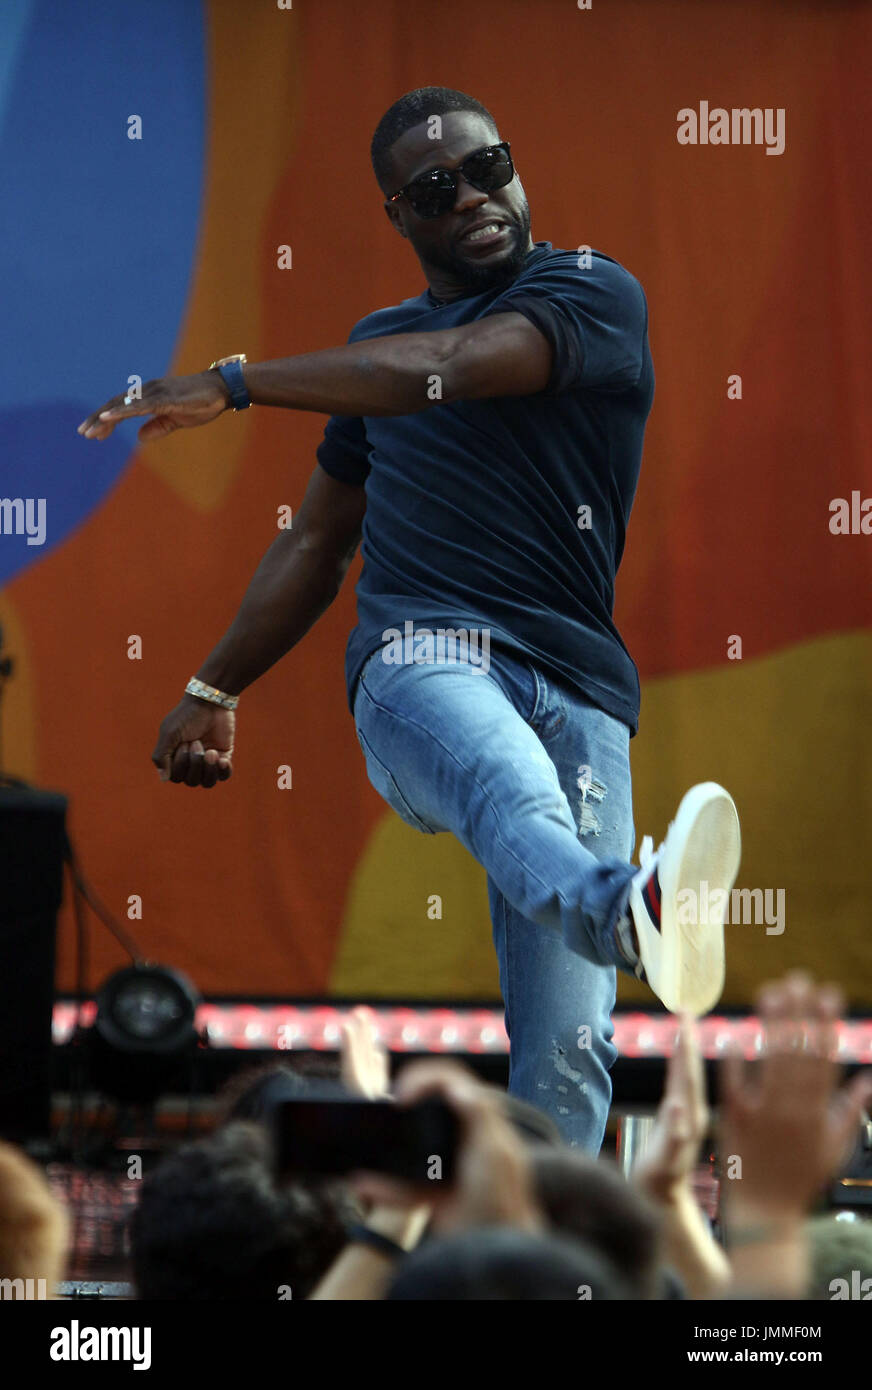 New York, New York, USA. 28 juillet, 2017. L'acteur Kevin HART lance un ballon de plage à l'auditoire à 'Good Morning America' dans Central Park. Credit : Nancy/Kaszerman ZUMA Wire/Alamy Live News Photo Stock